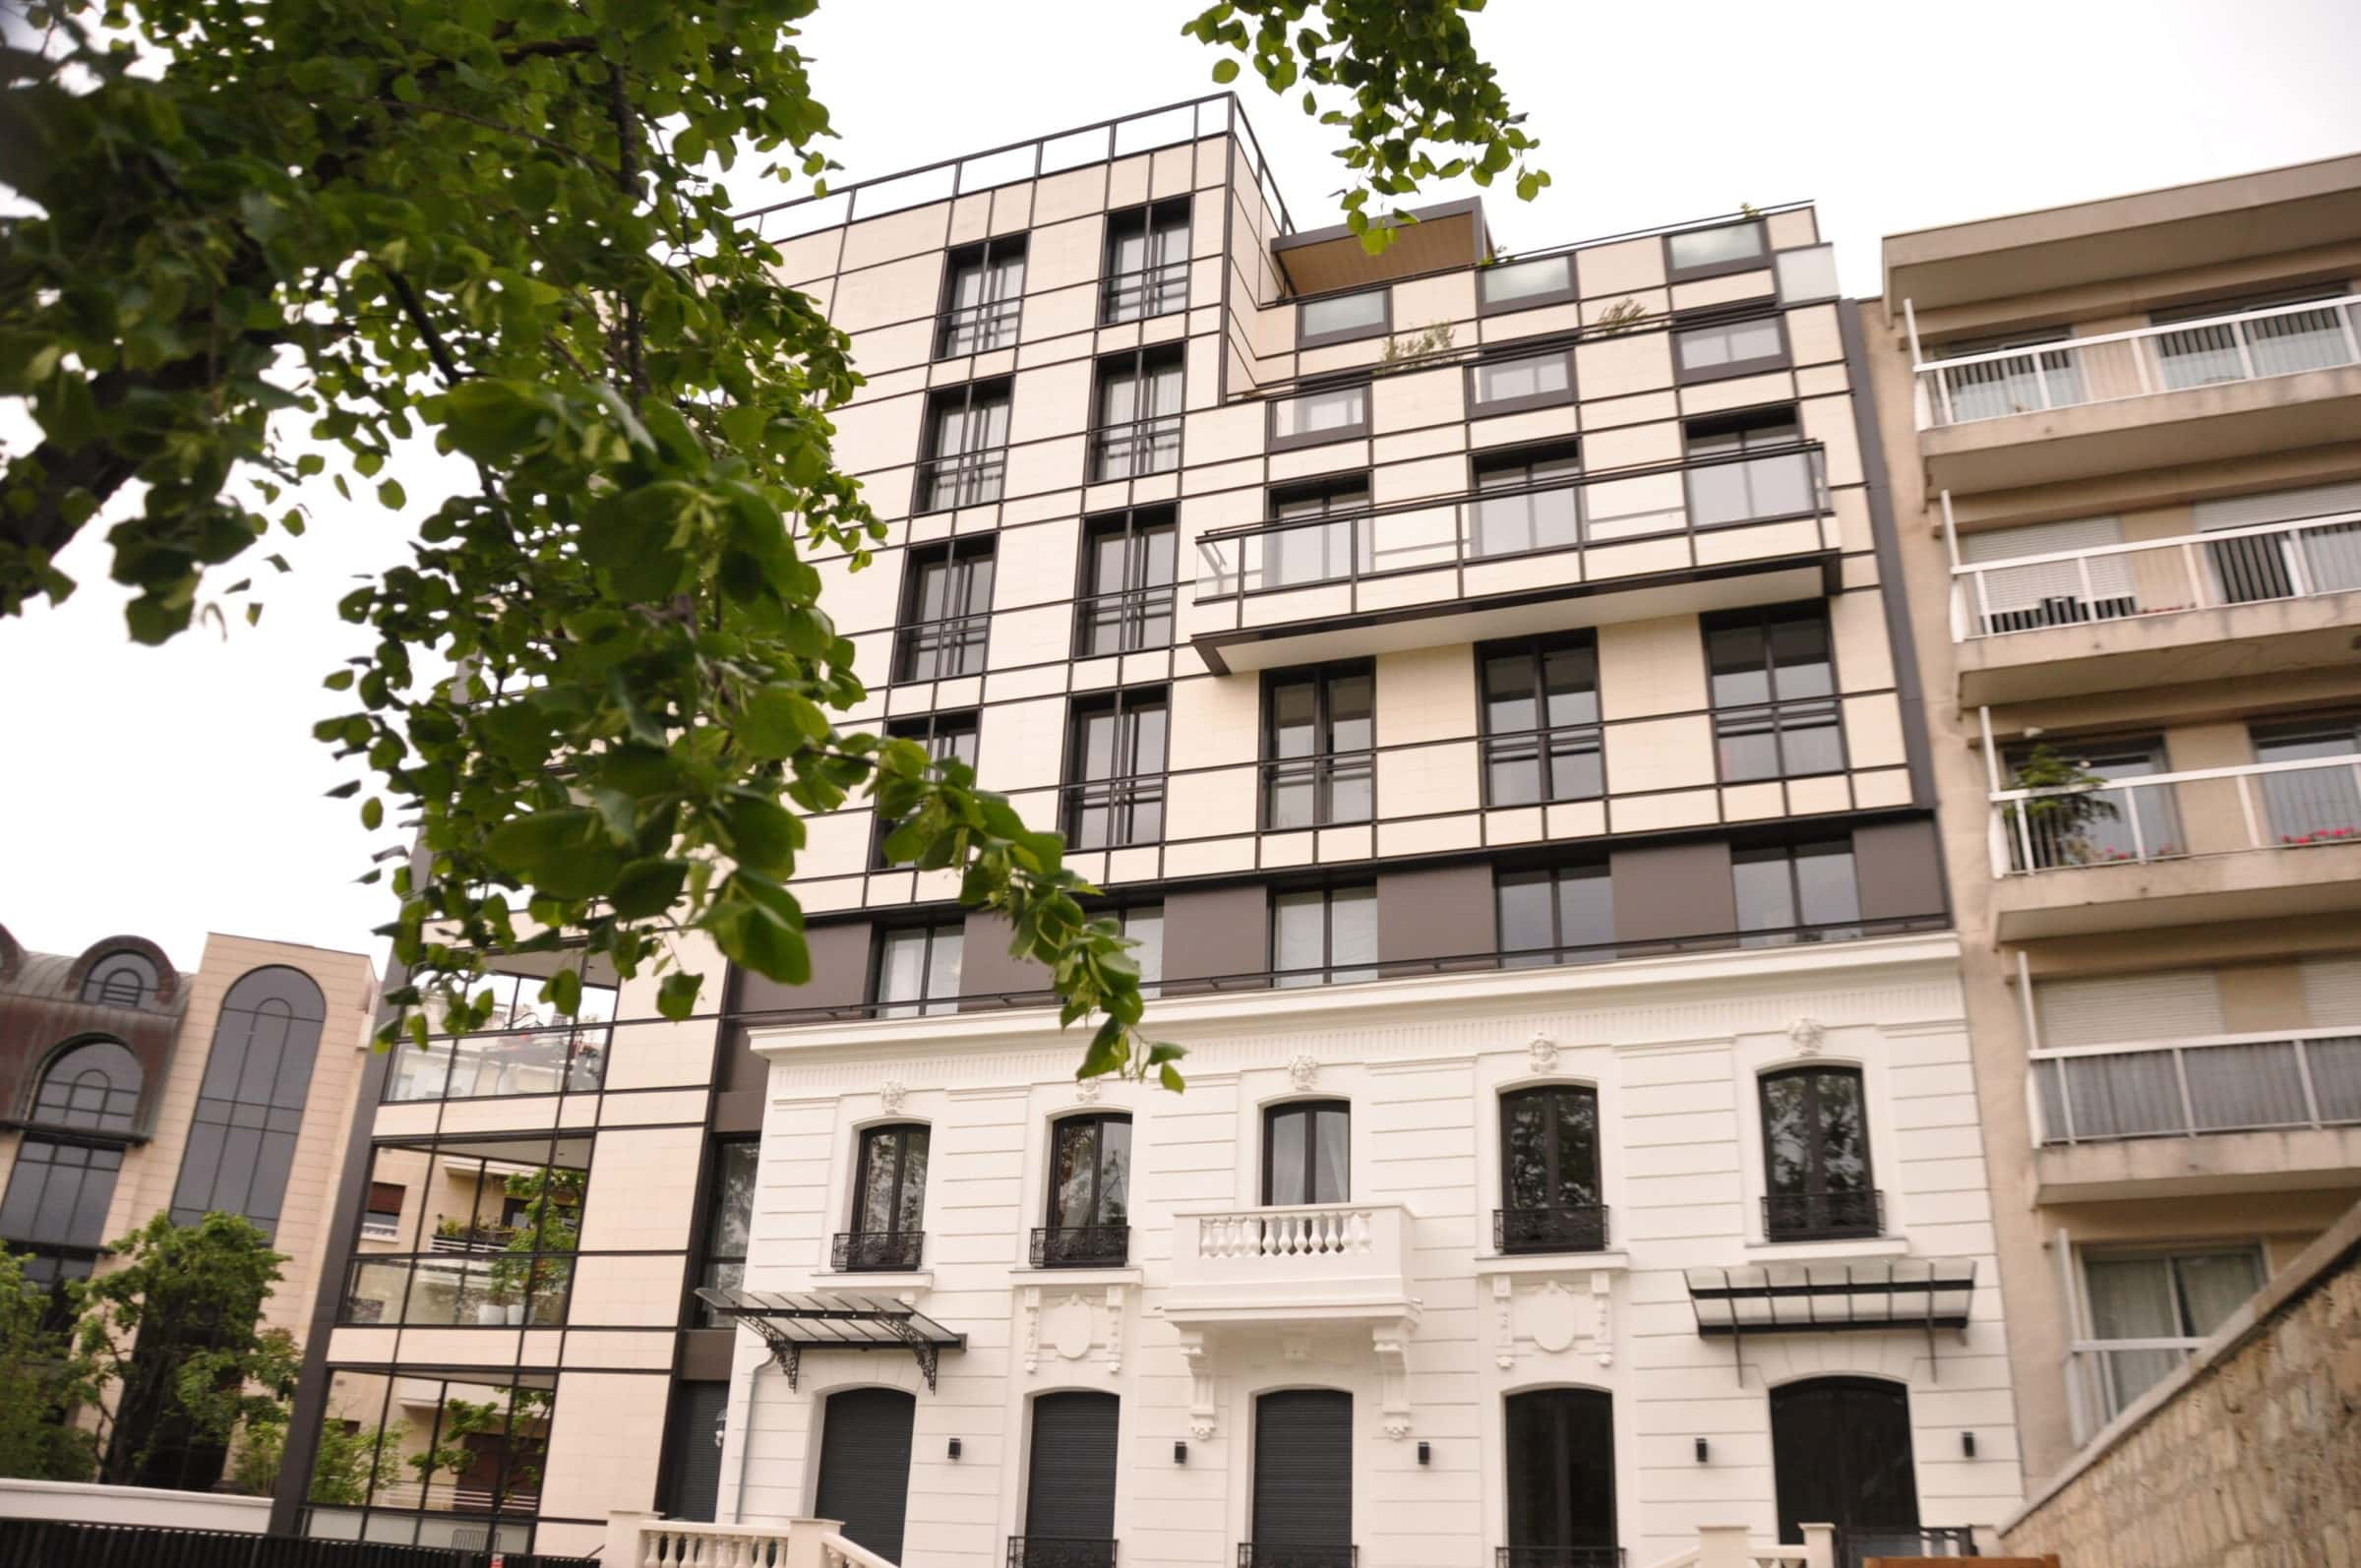 ROCAMAT Immeuble Rouvray Neuilly pierre de Tervoux arch Wilmotte 15 scaled